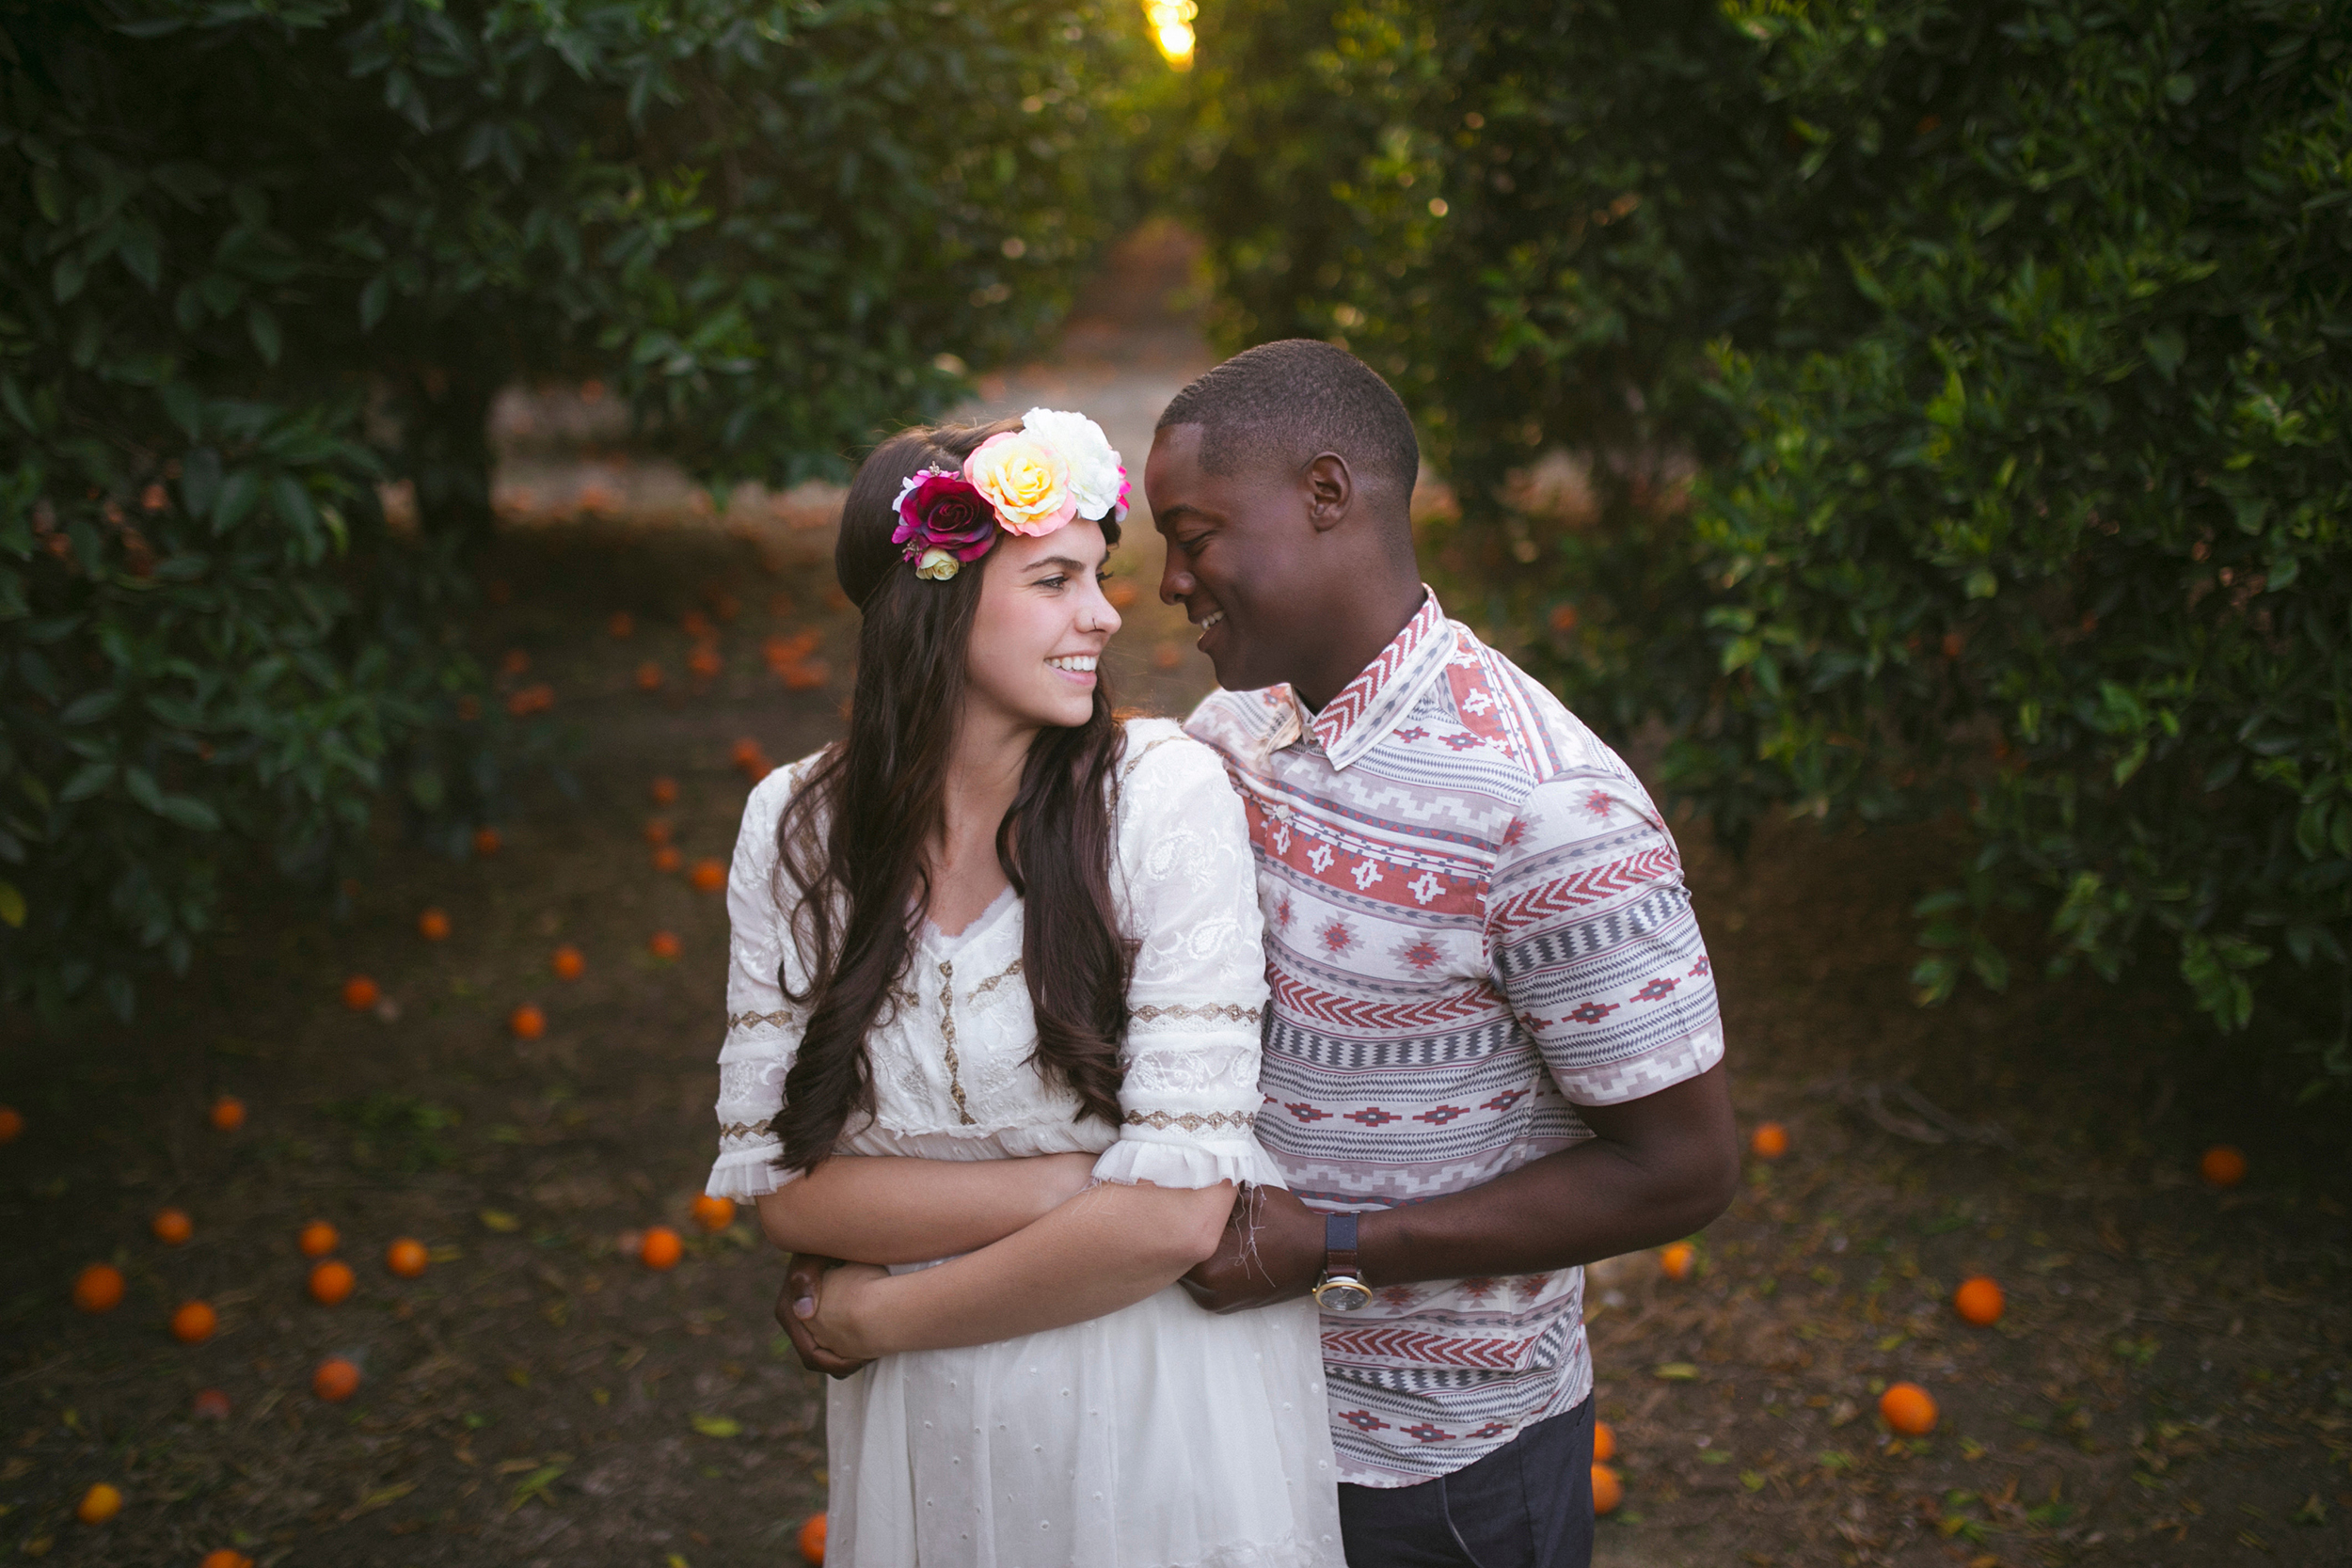 Colby-and-Jess-Adventure-Engagement-Photography-Orange-Grove-San-Bernardino-California289.jpg